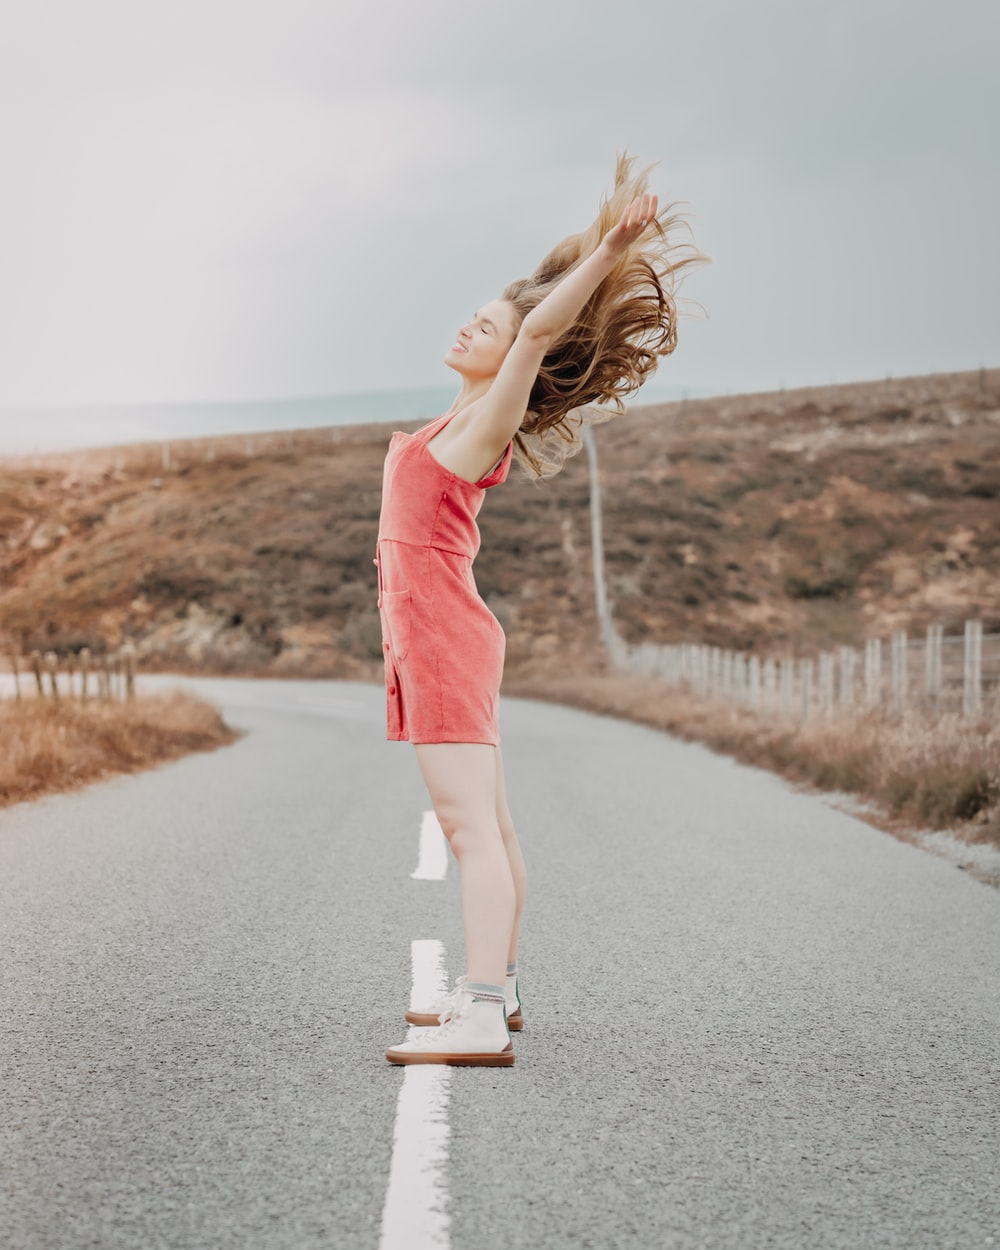 woman in red dress standing on road during daytime